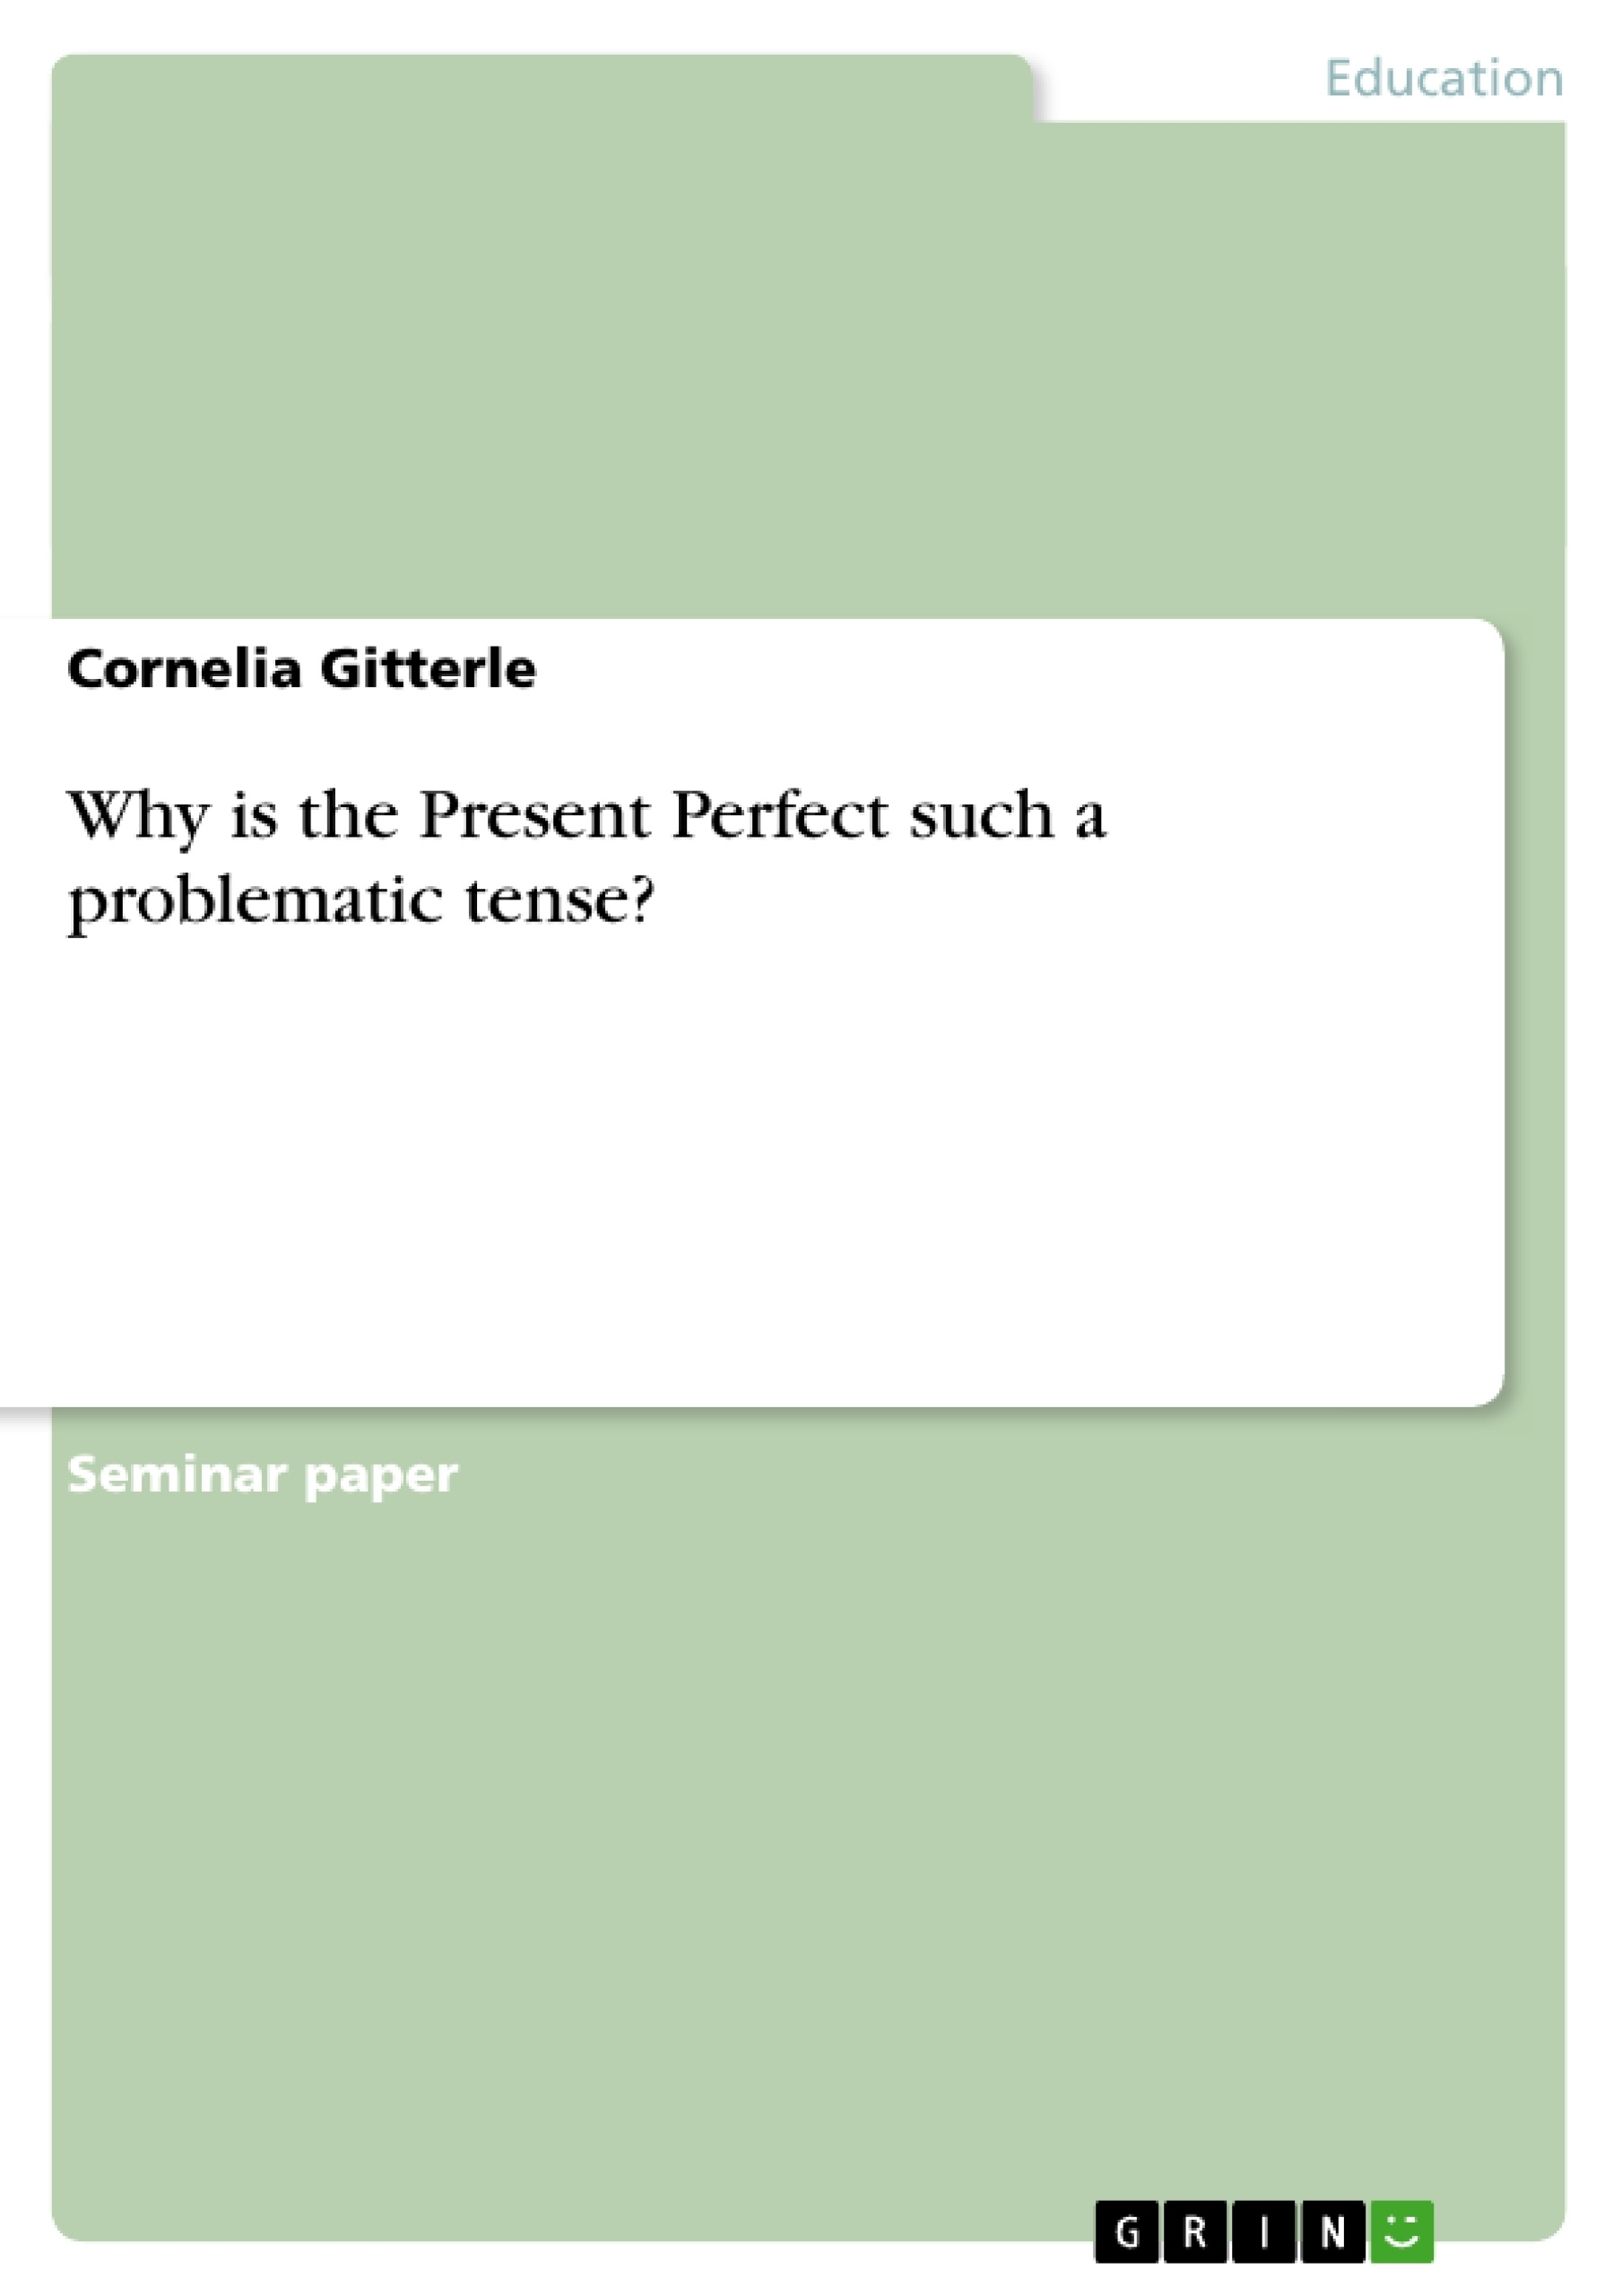 Title: Why is the Present Perfect such a problematic tense?